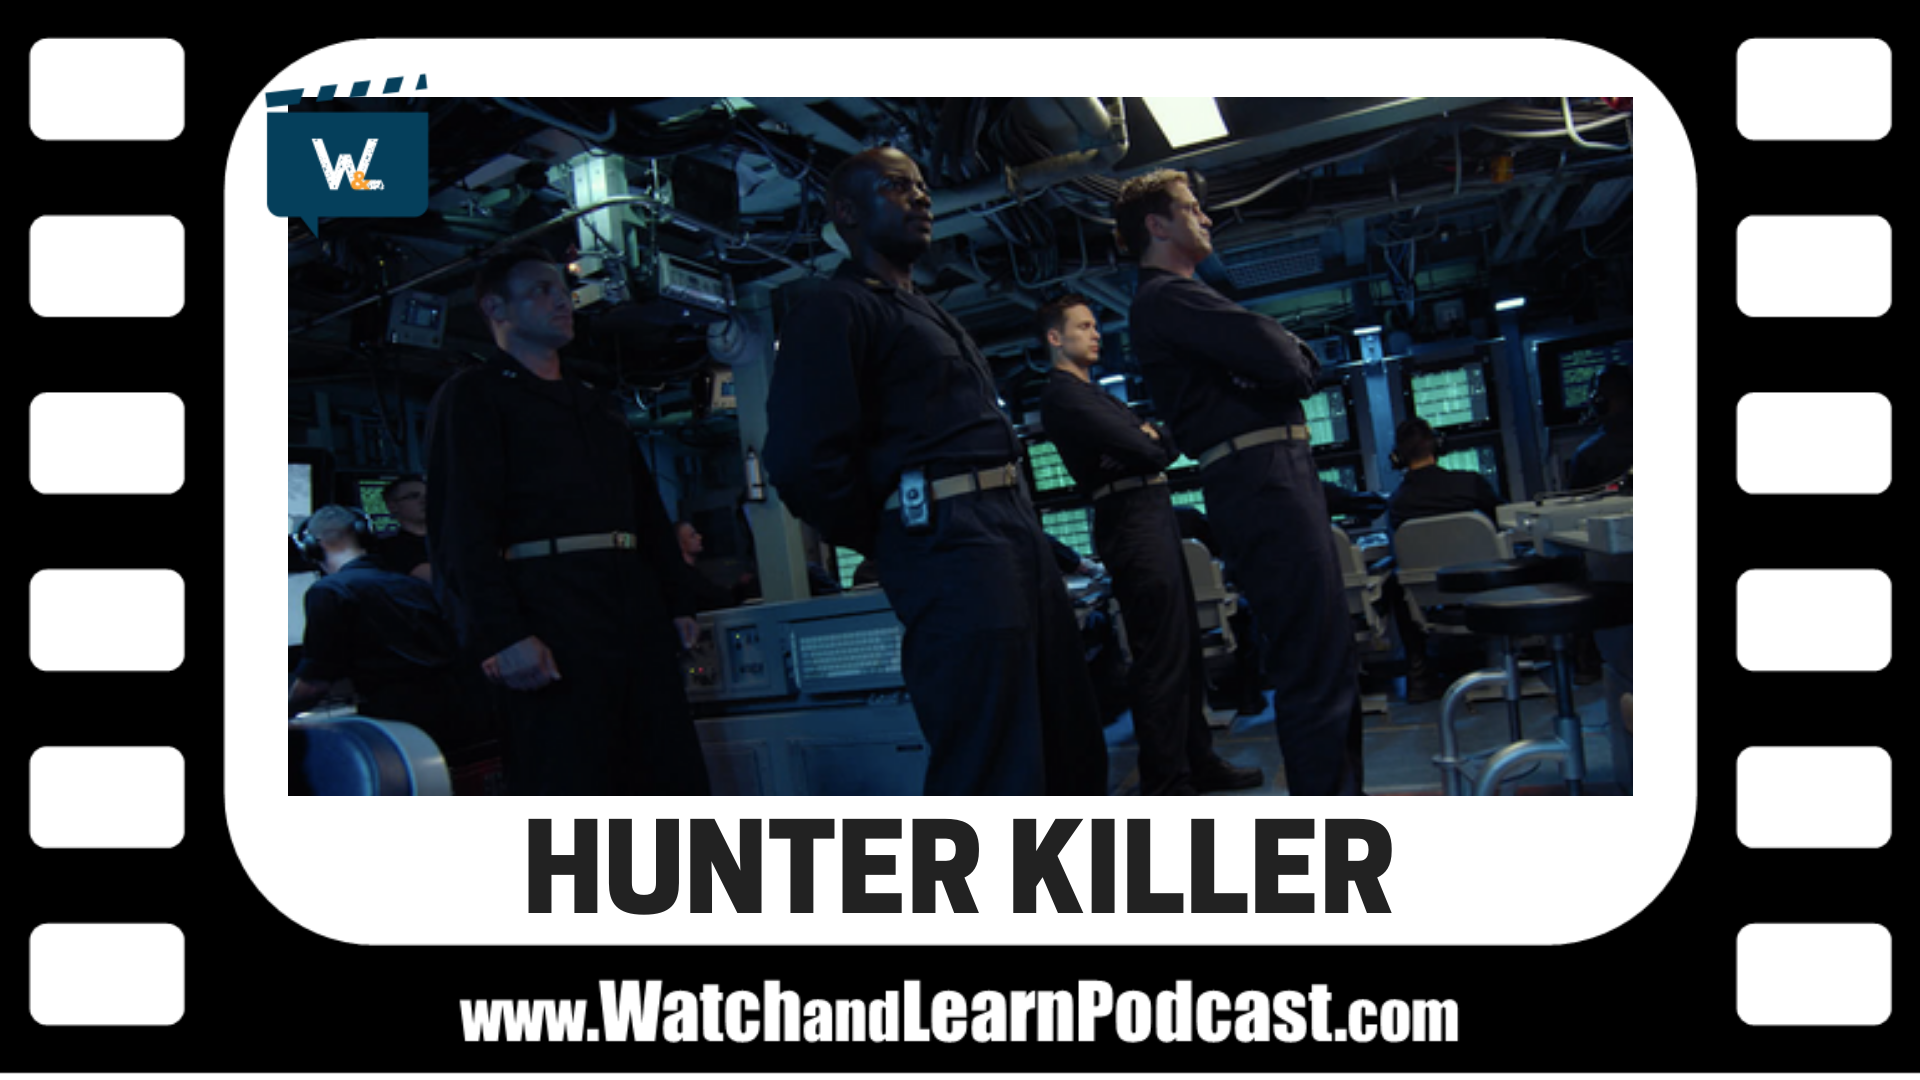 Hunter Killer spoiler review and lessons learned